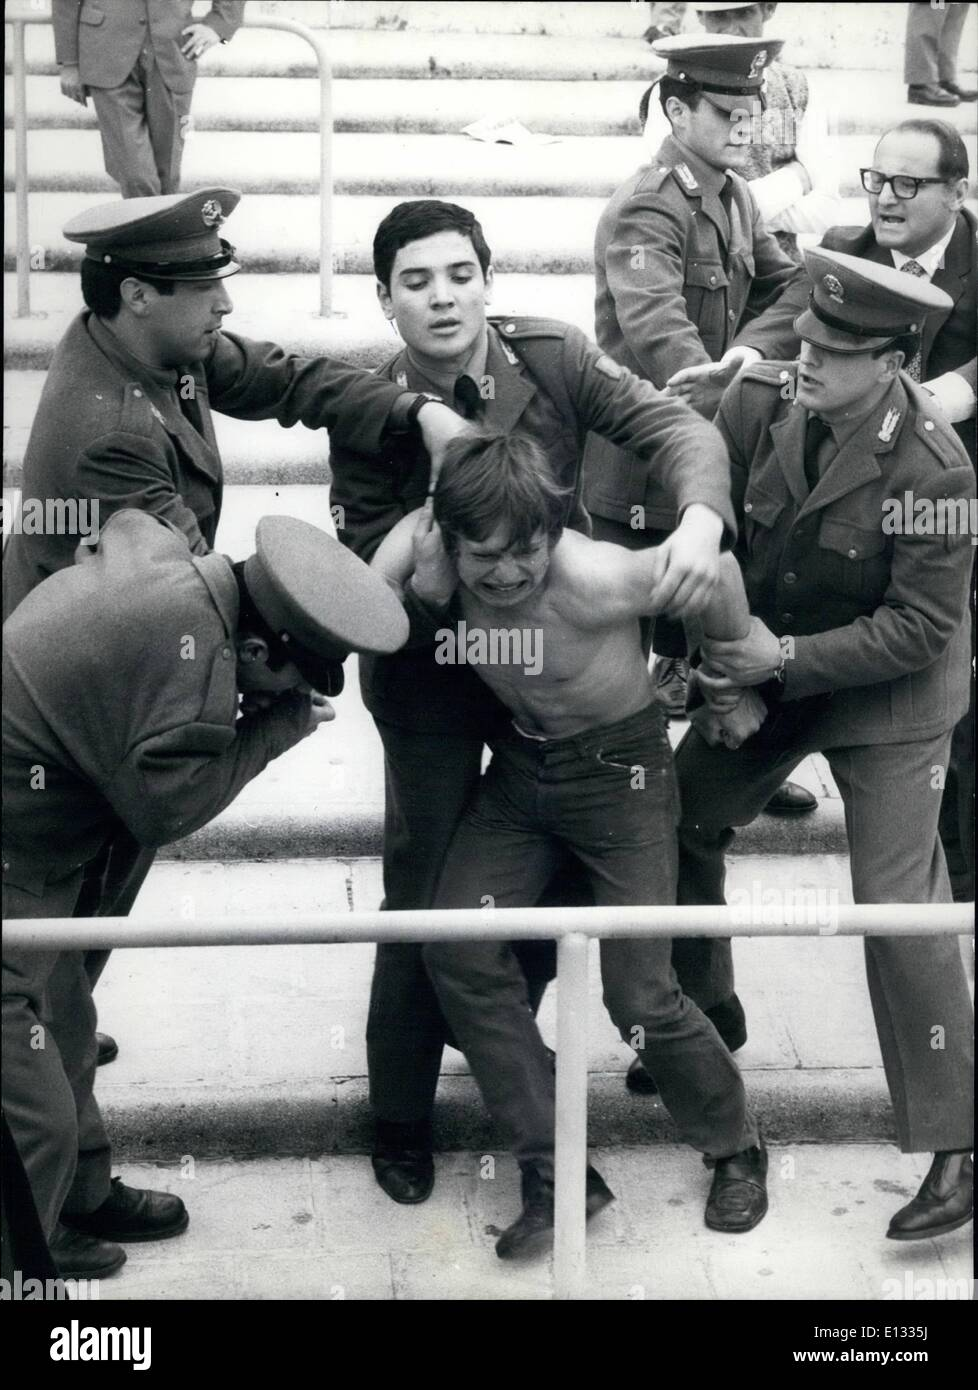 Feb. 26, 2012 - A supporter of the Bari football team, who lost 3-0, the match in Rome against Lazio, was reduced to obedience by four policemen, one of them bits the hand of the unlucky supporter. - Stock Image